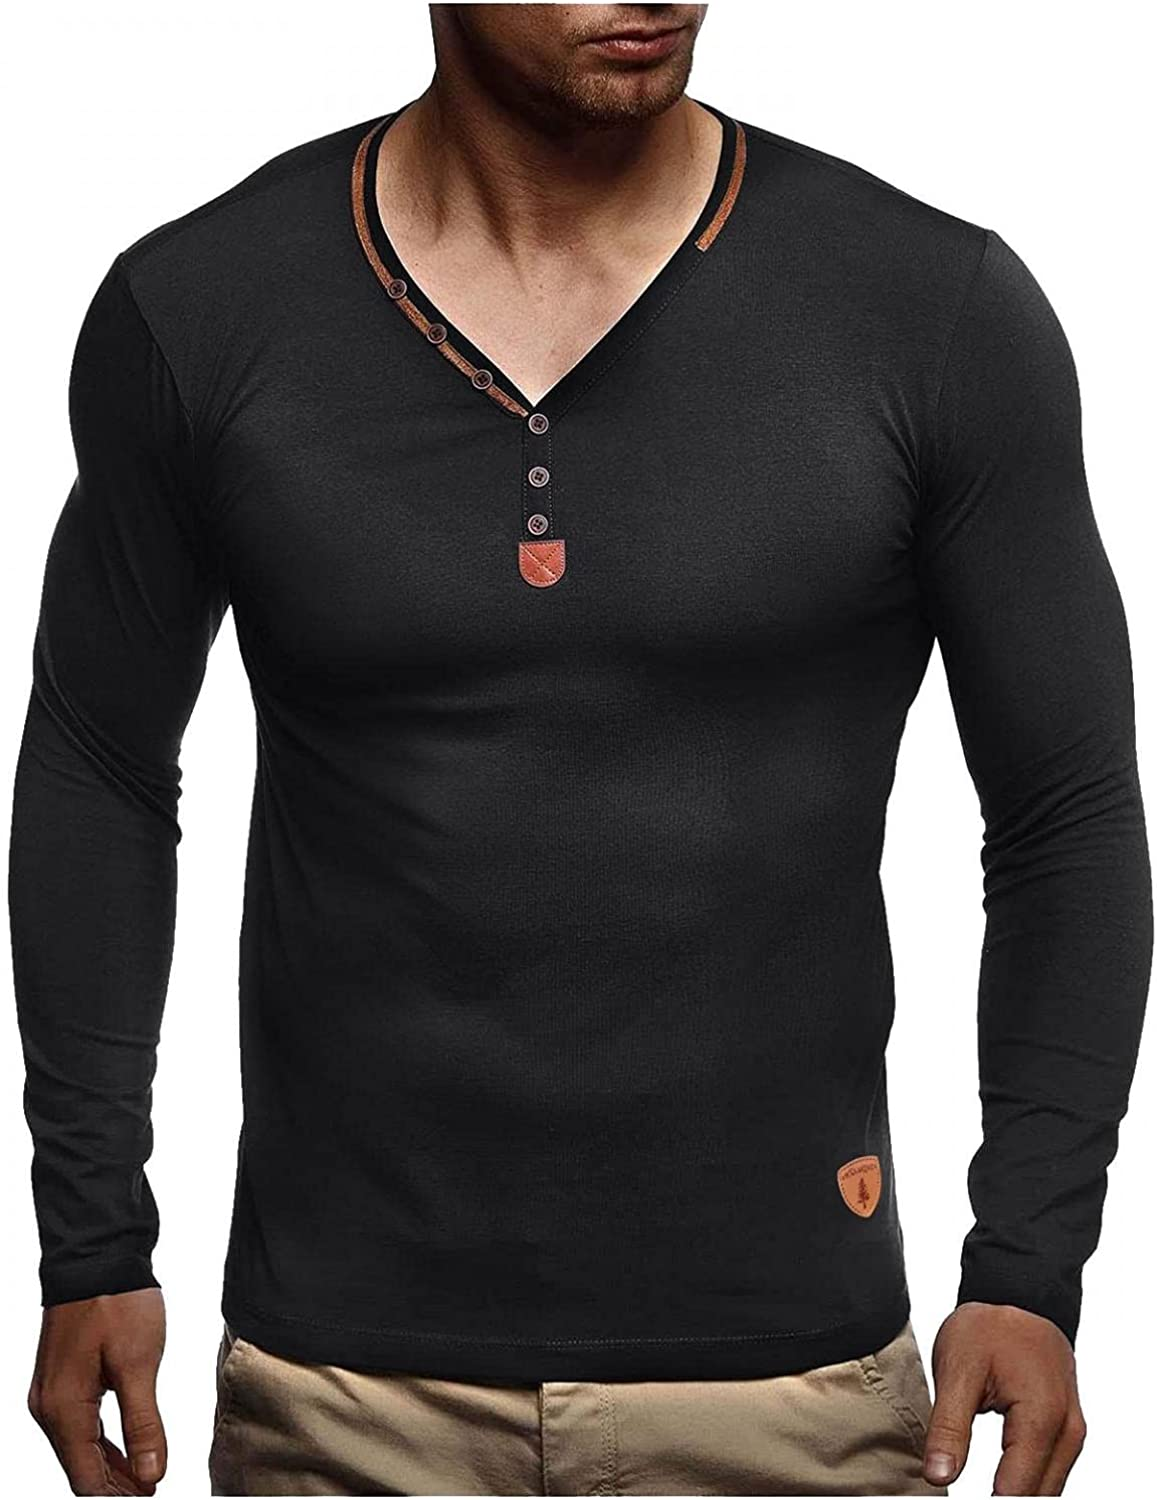 Mens Shirts Men's Autumn Winter Multi-Button Standard Solid Color V-Neck Long Sleeve Tee Shirts for Men Polo Shirts for Men